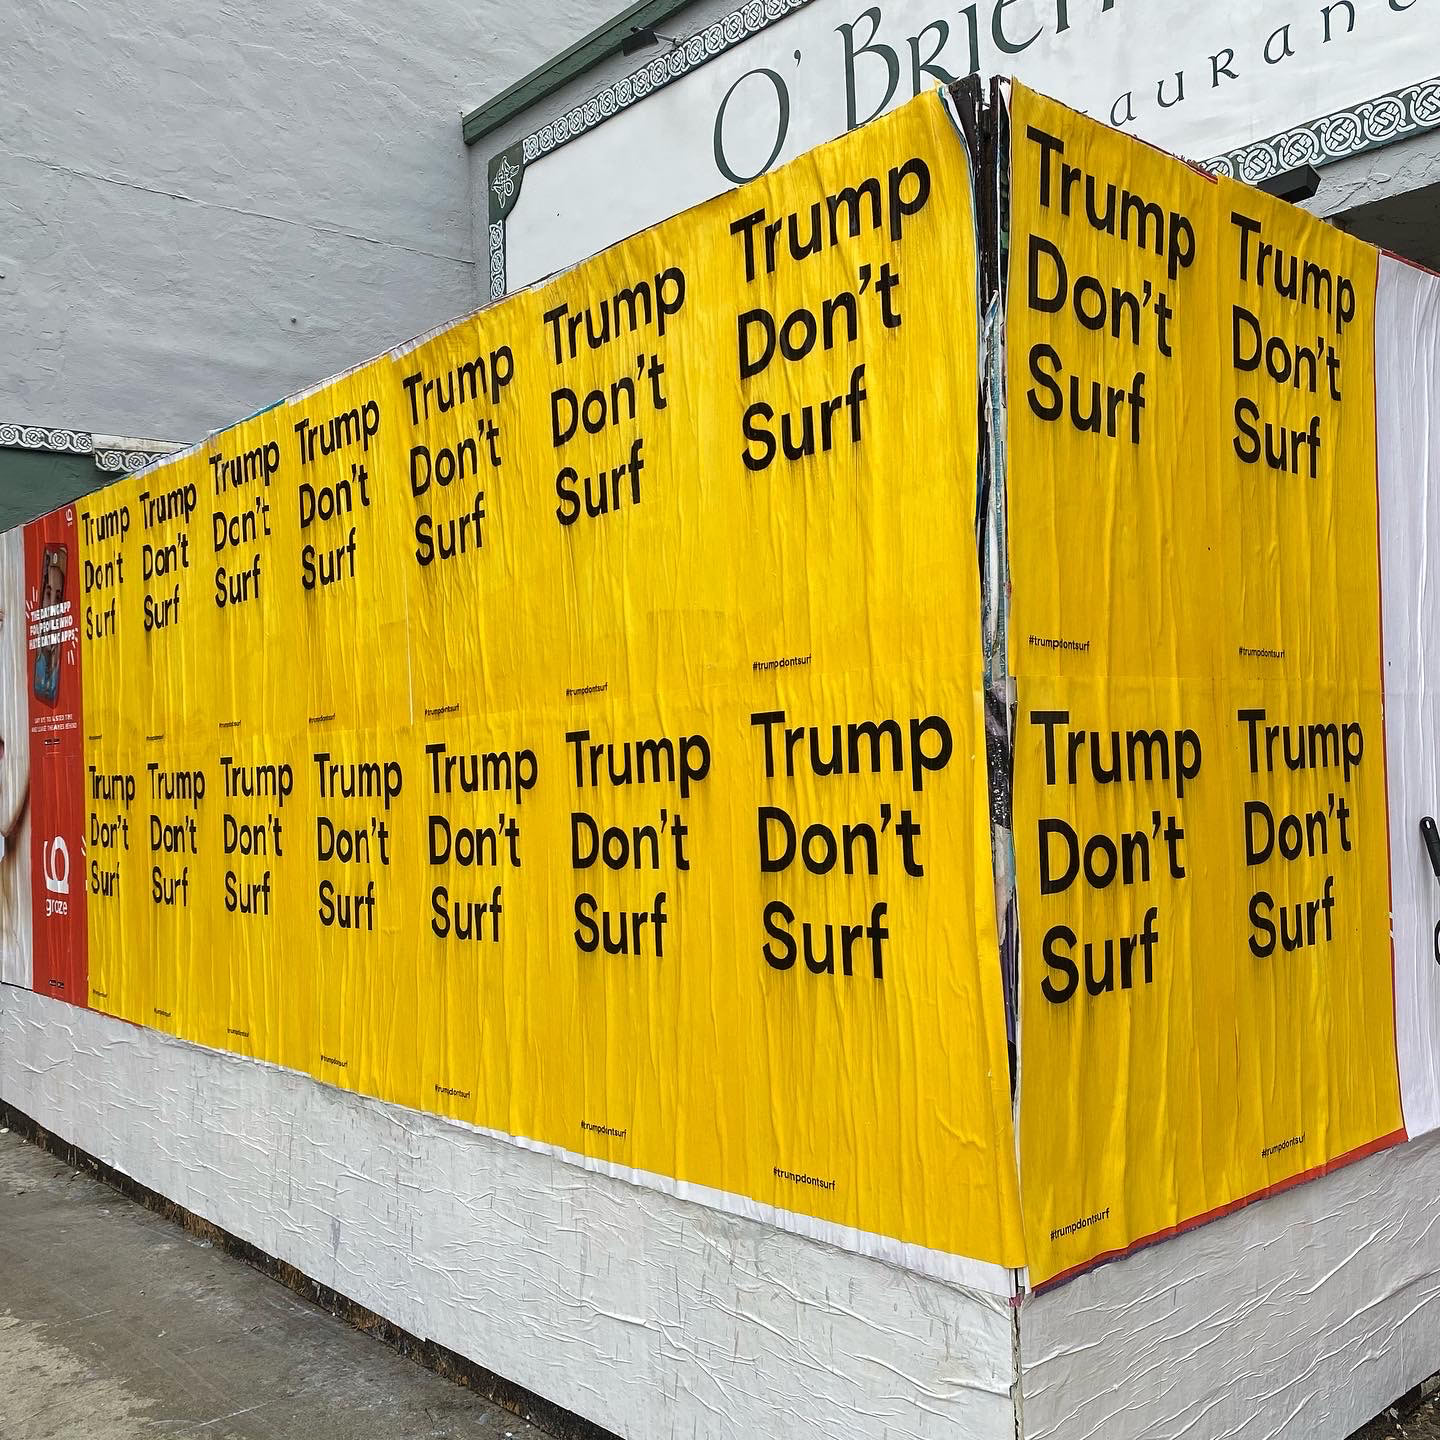 Trump Don't Surf Poster Close up